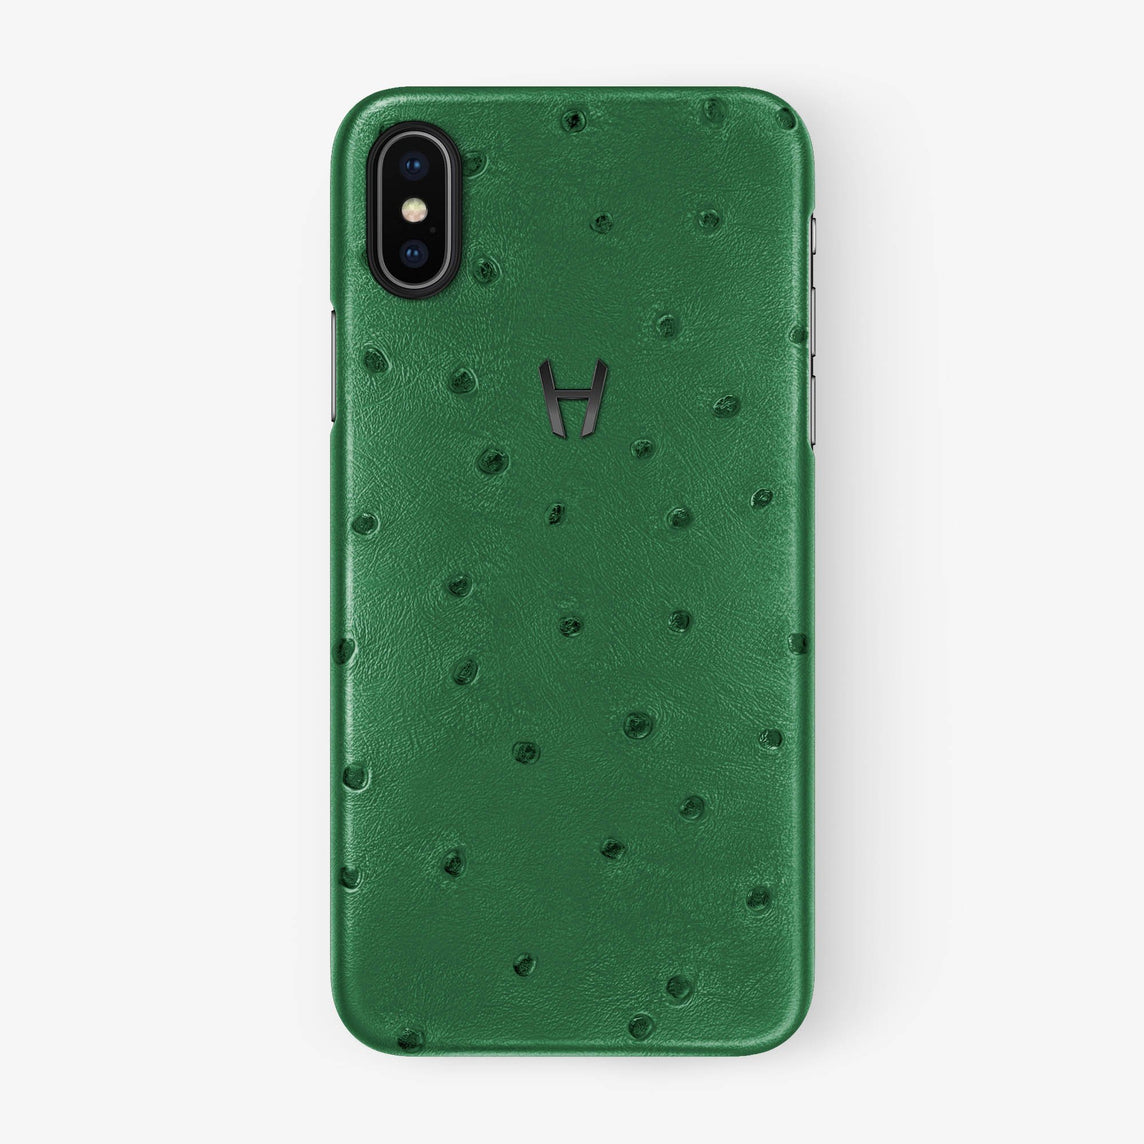 Ostrich Case iPhone X/Xs | Green - Black withouth-personalization